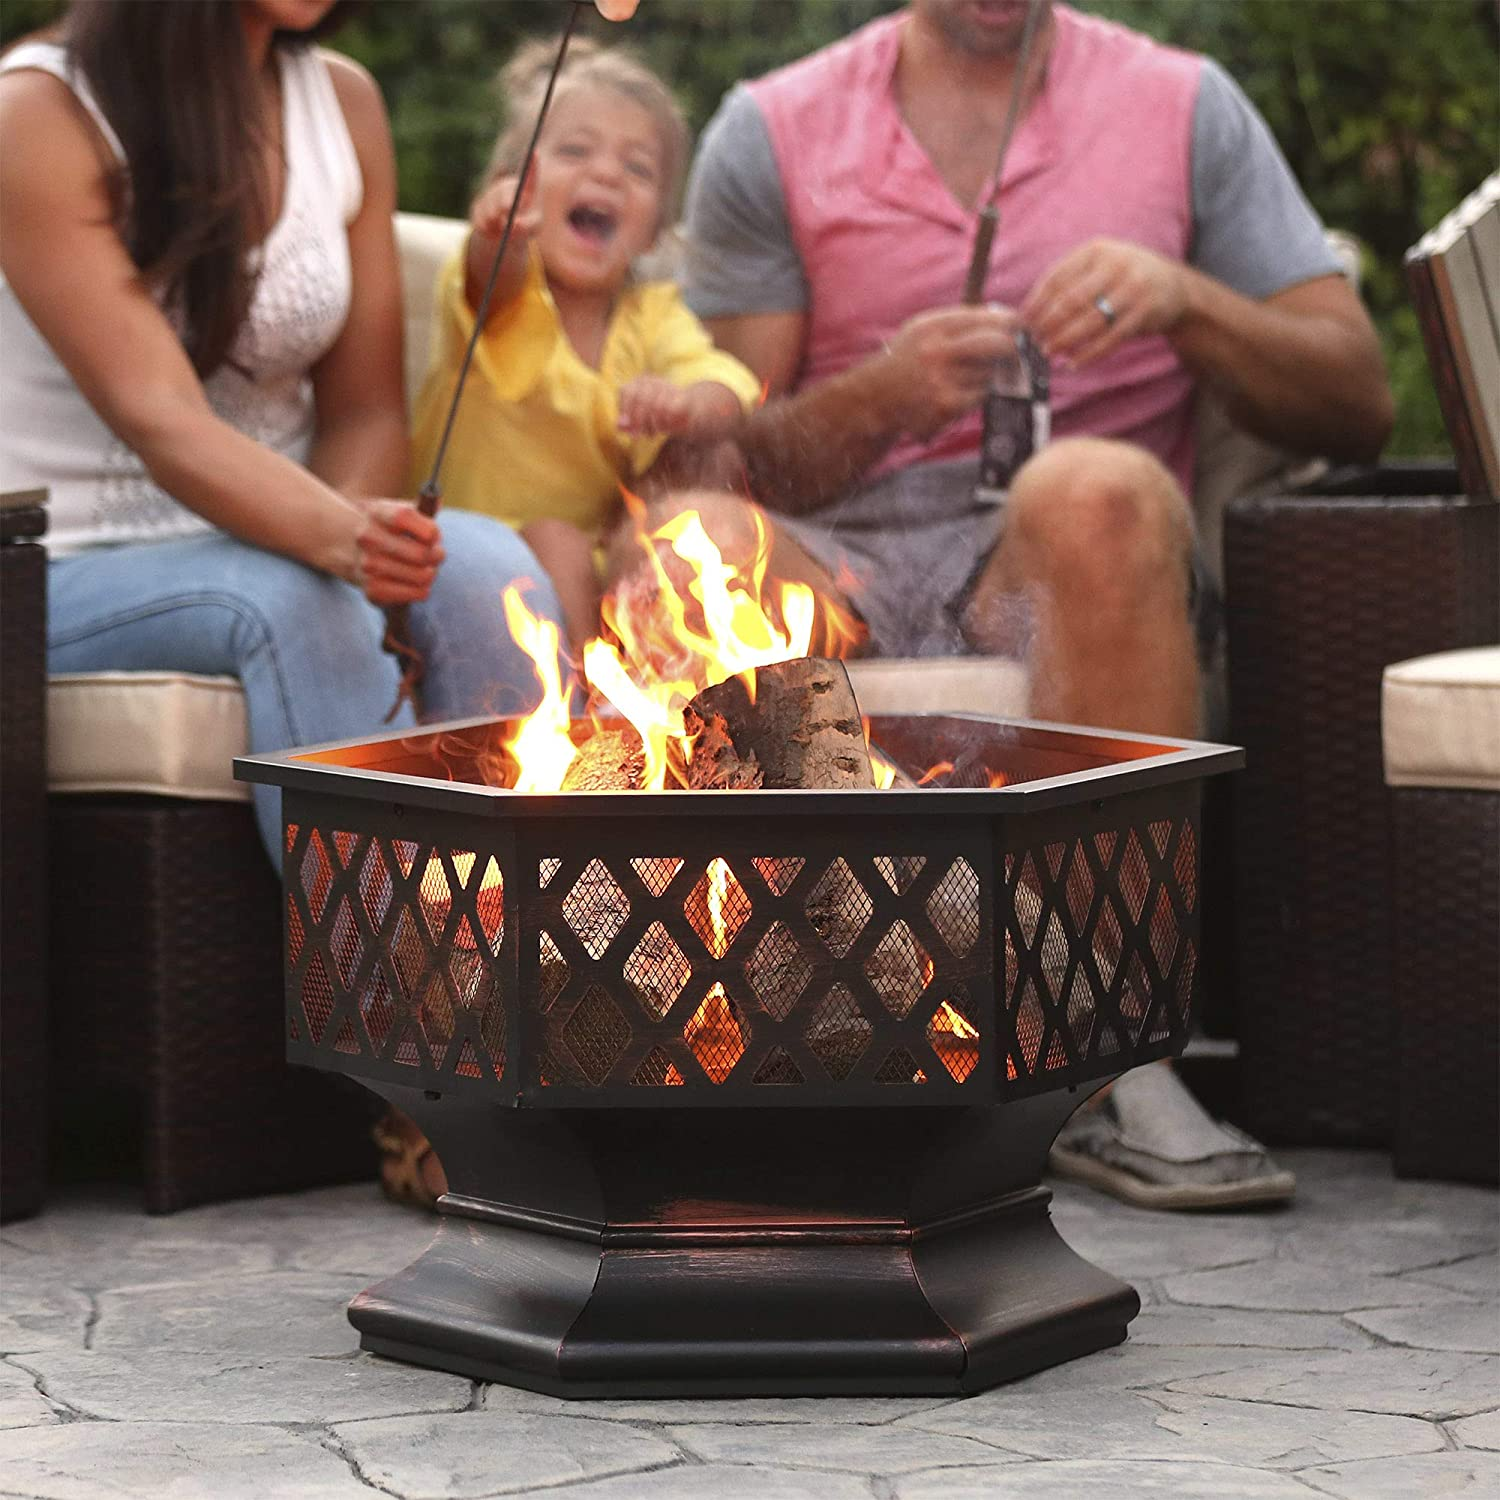 Best Choice Products SKY2414 fire-pits, Medium